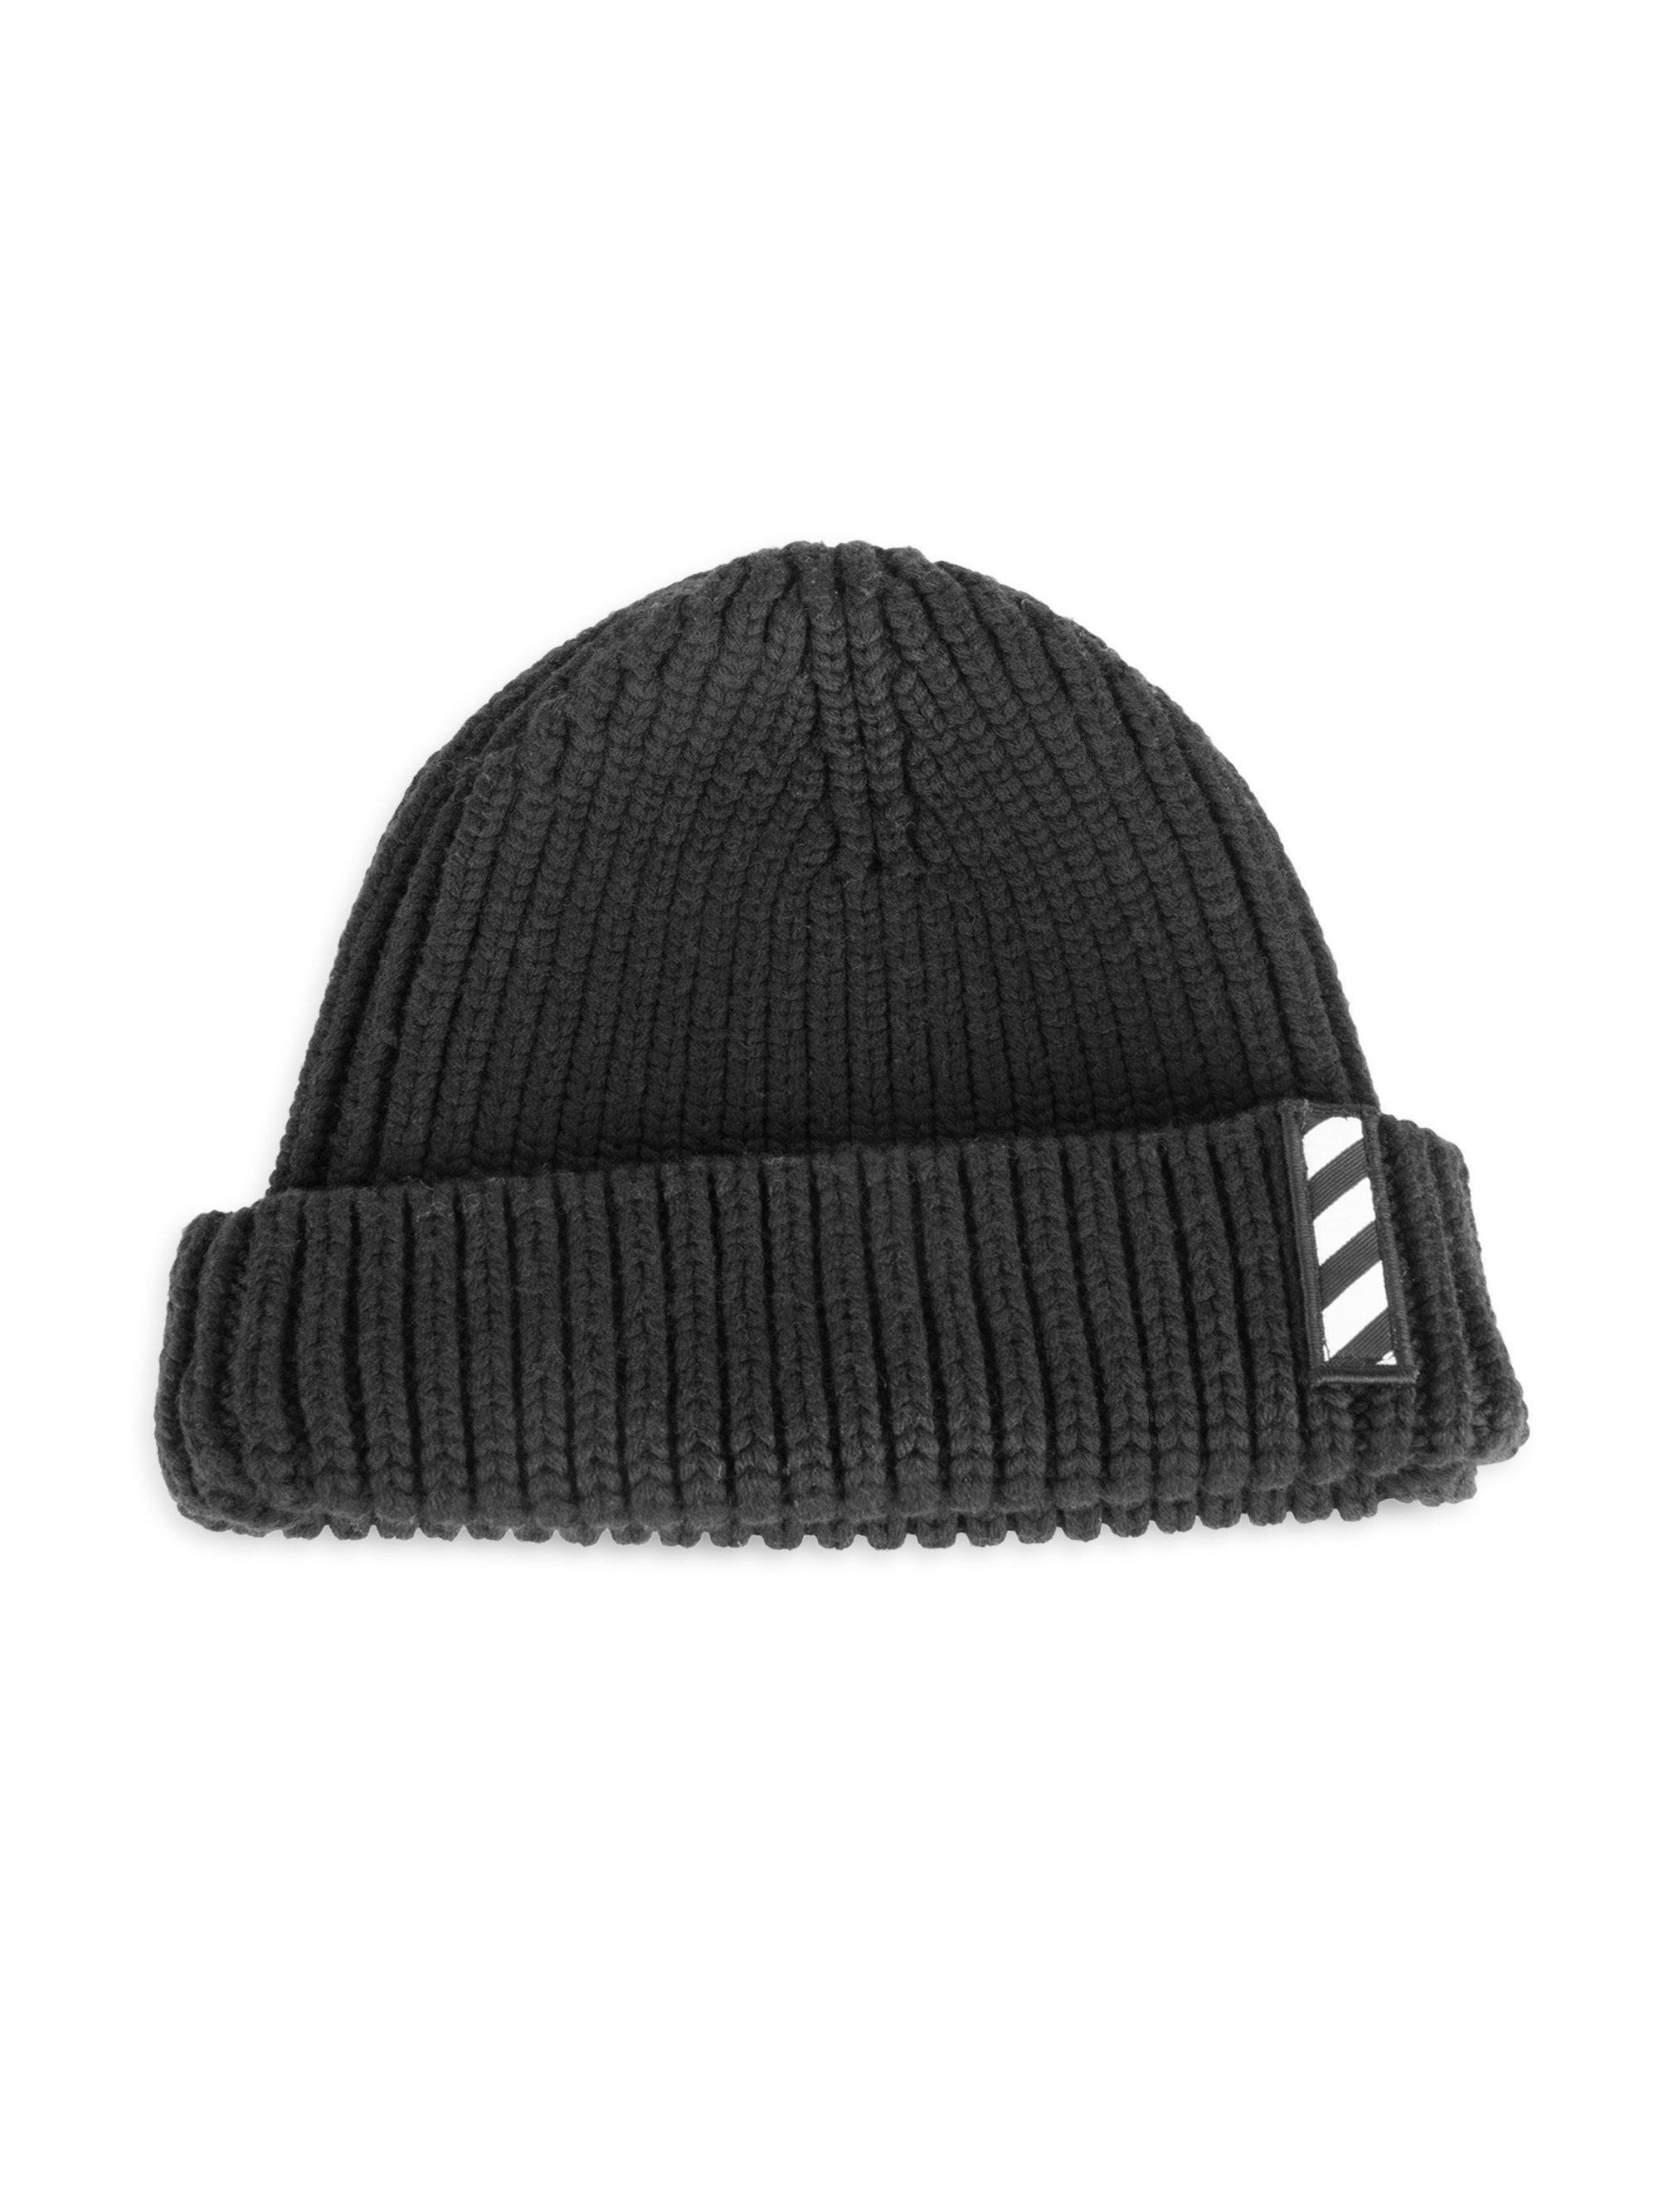 6fcef65d5 Men's Black Logo Patch Wool Beanie